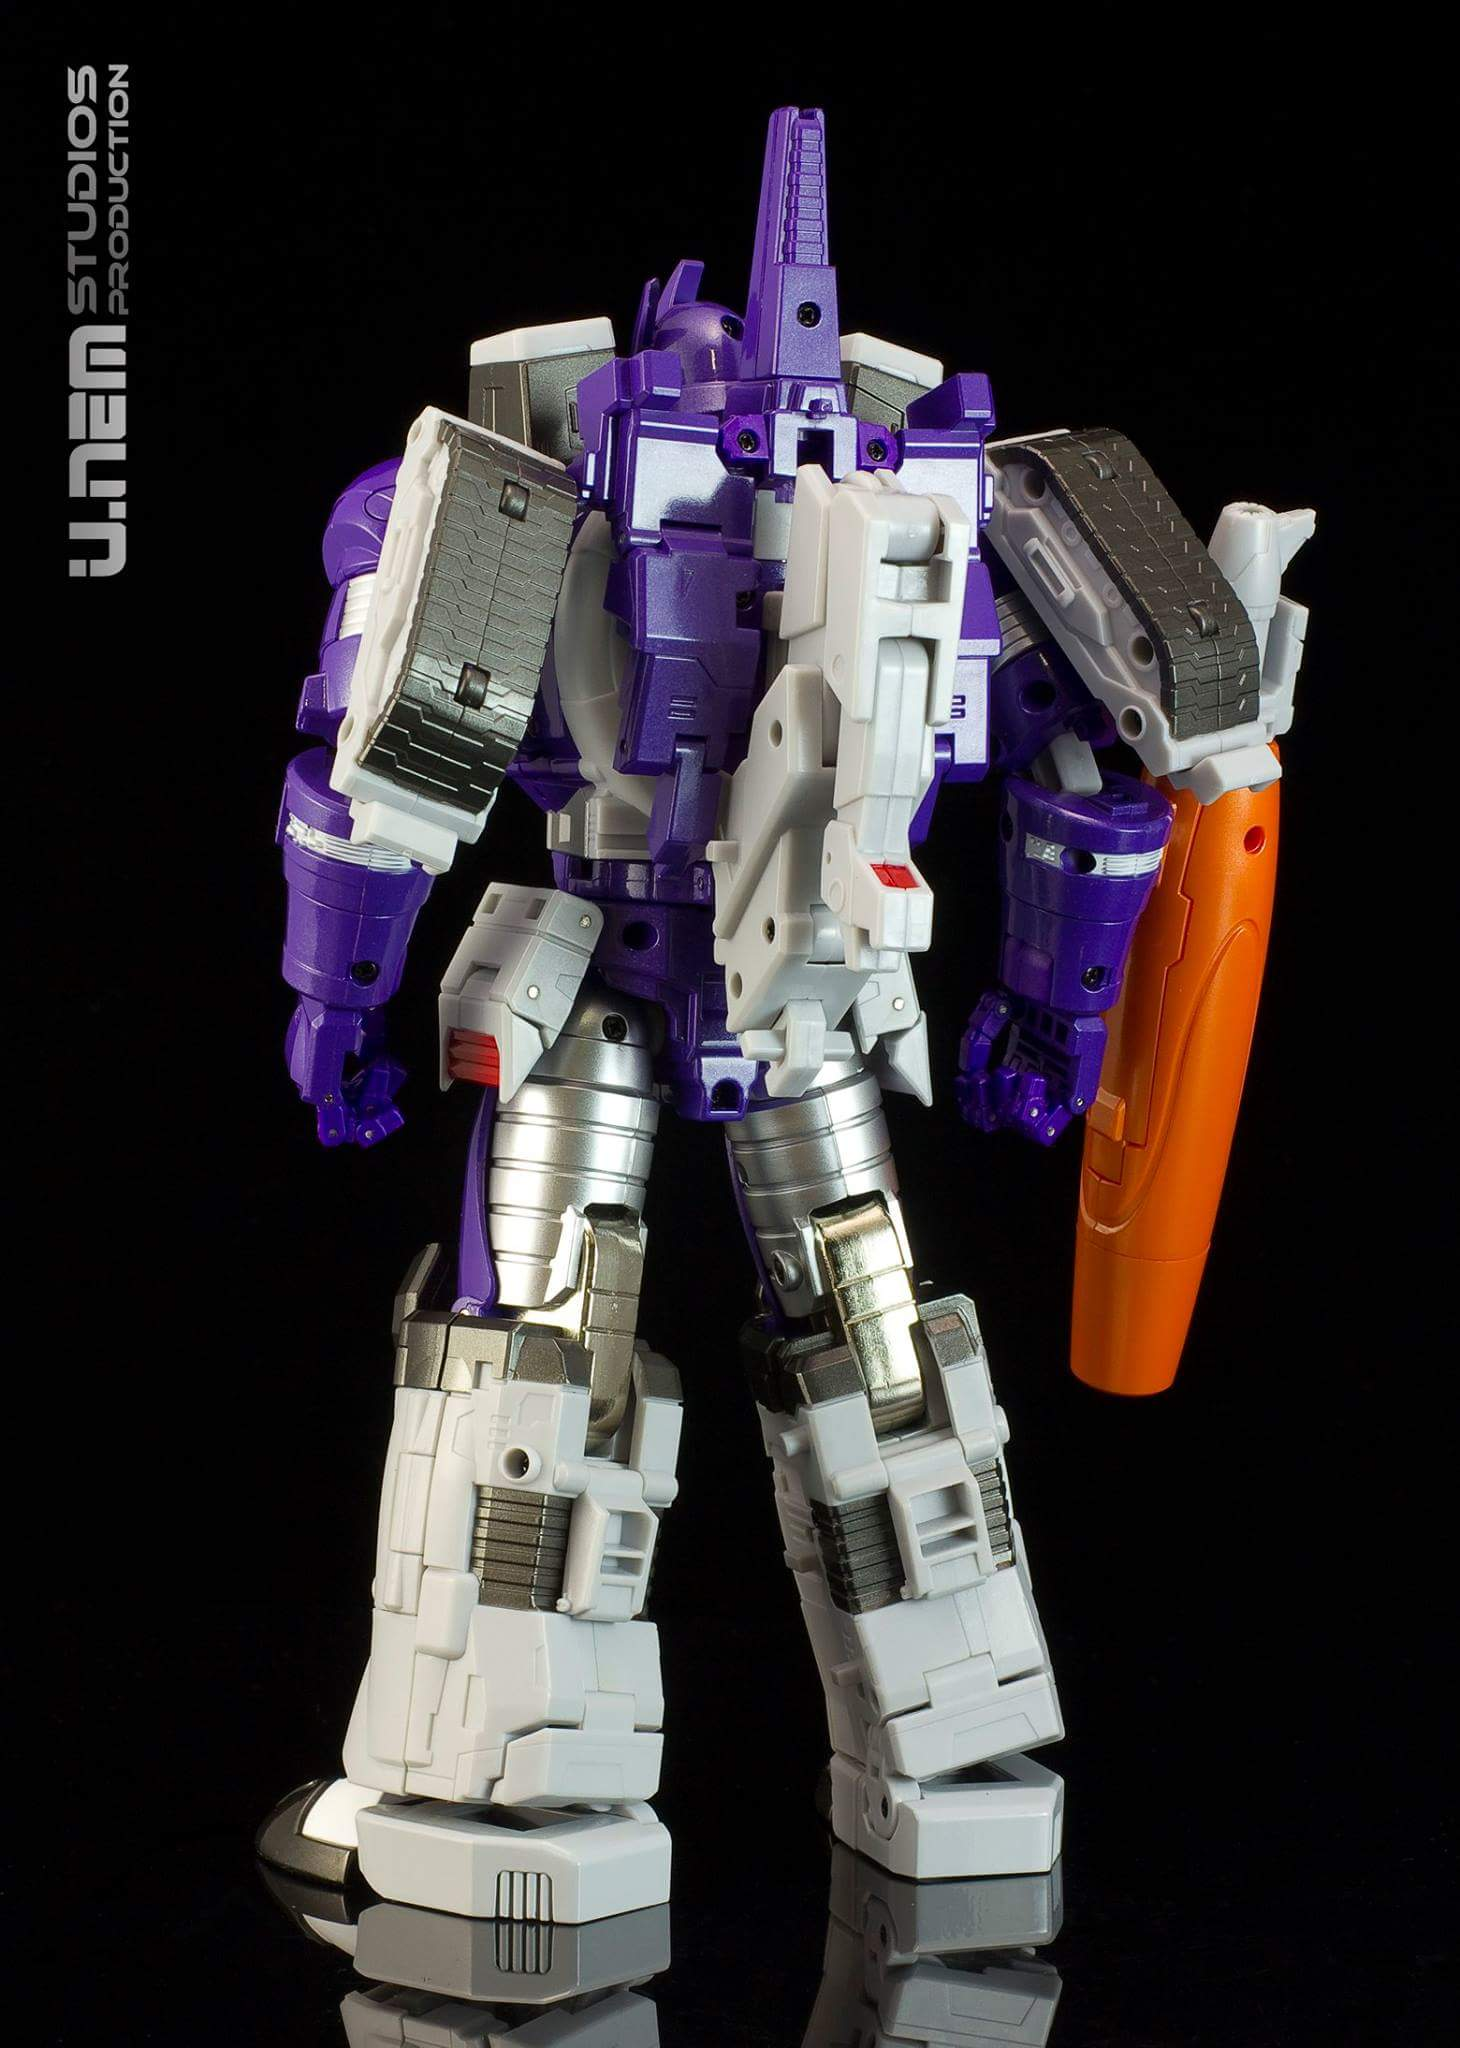 [Fanstoys] Produit Tiers - Jouet FT-16 Sovereign - aka Galvatron - Page 3 5G4smaWL